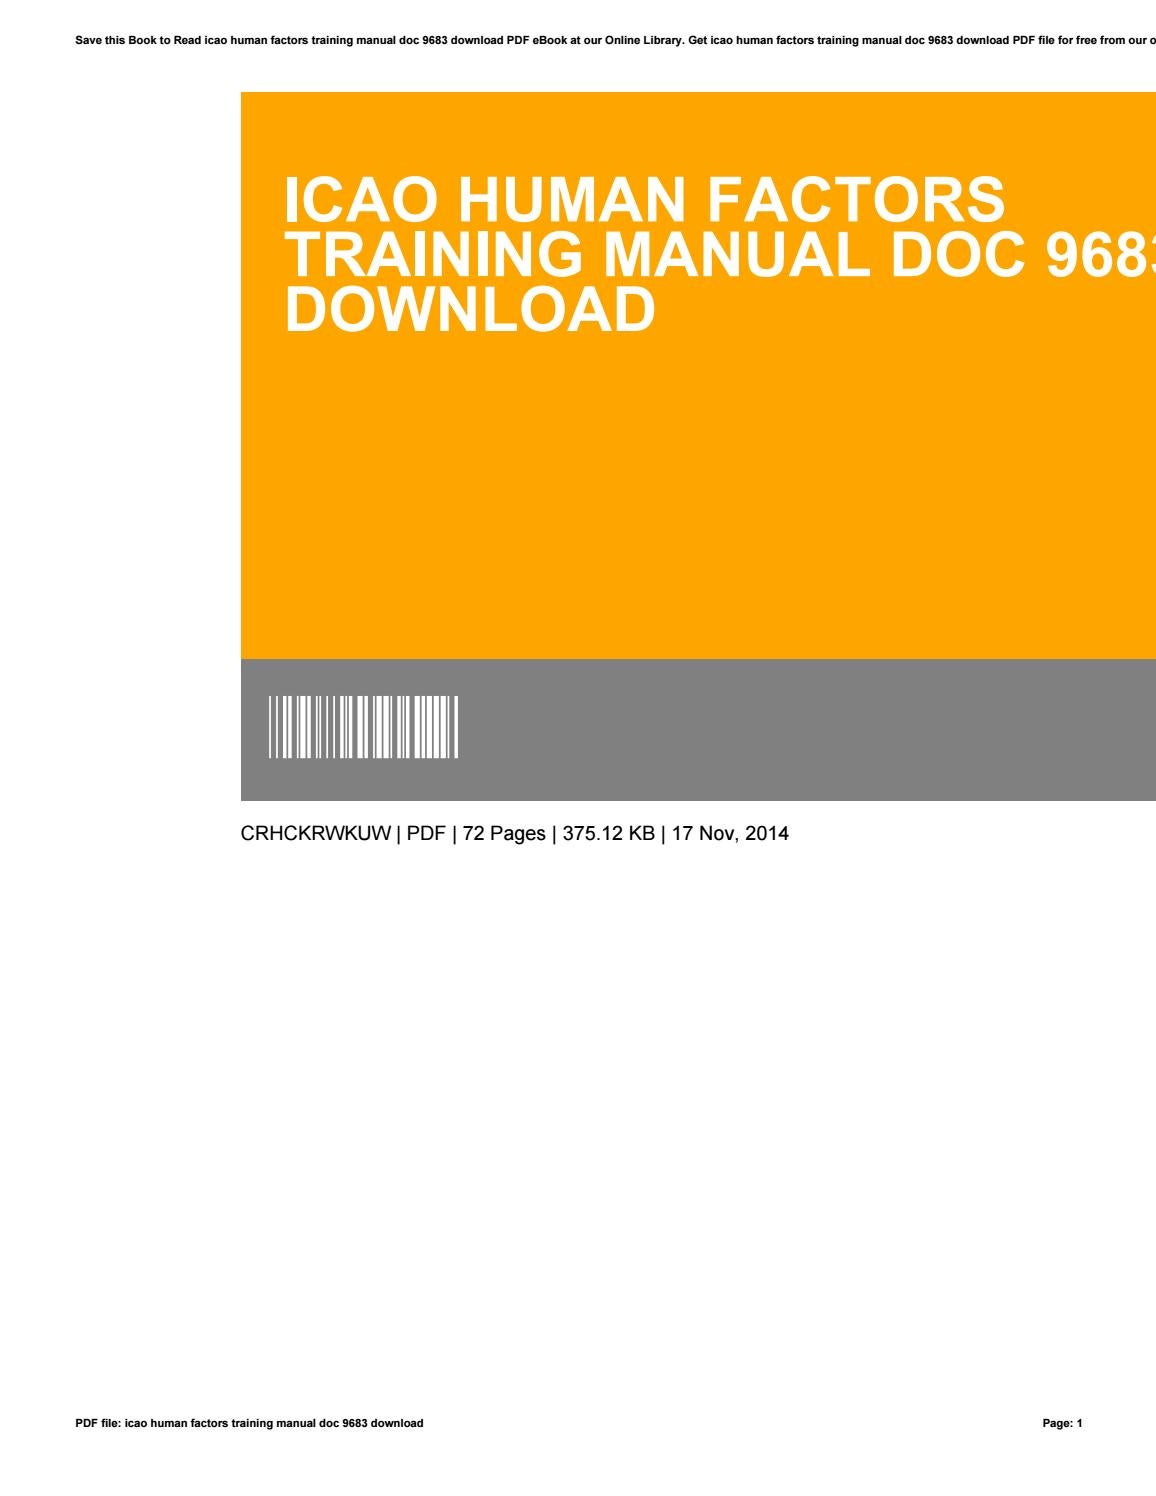 Icao human factors training manual doc 9683 download by squirtsnap93 - issuu